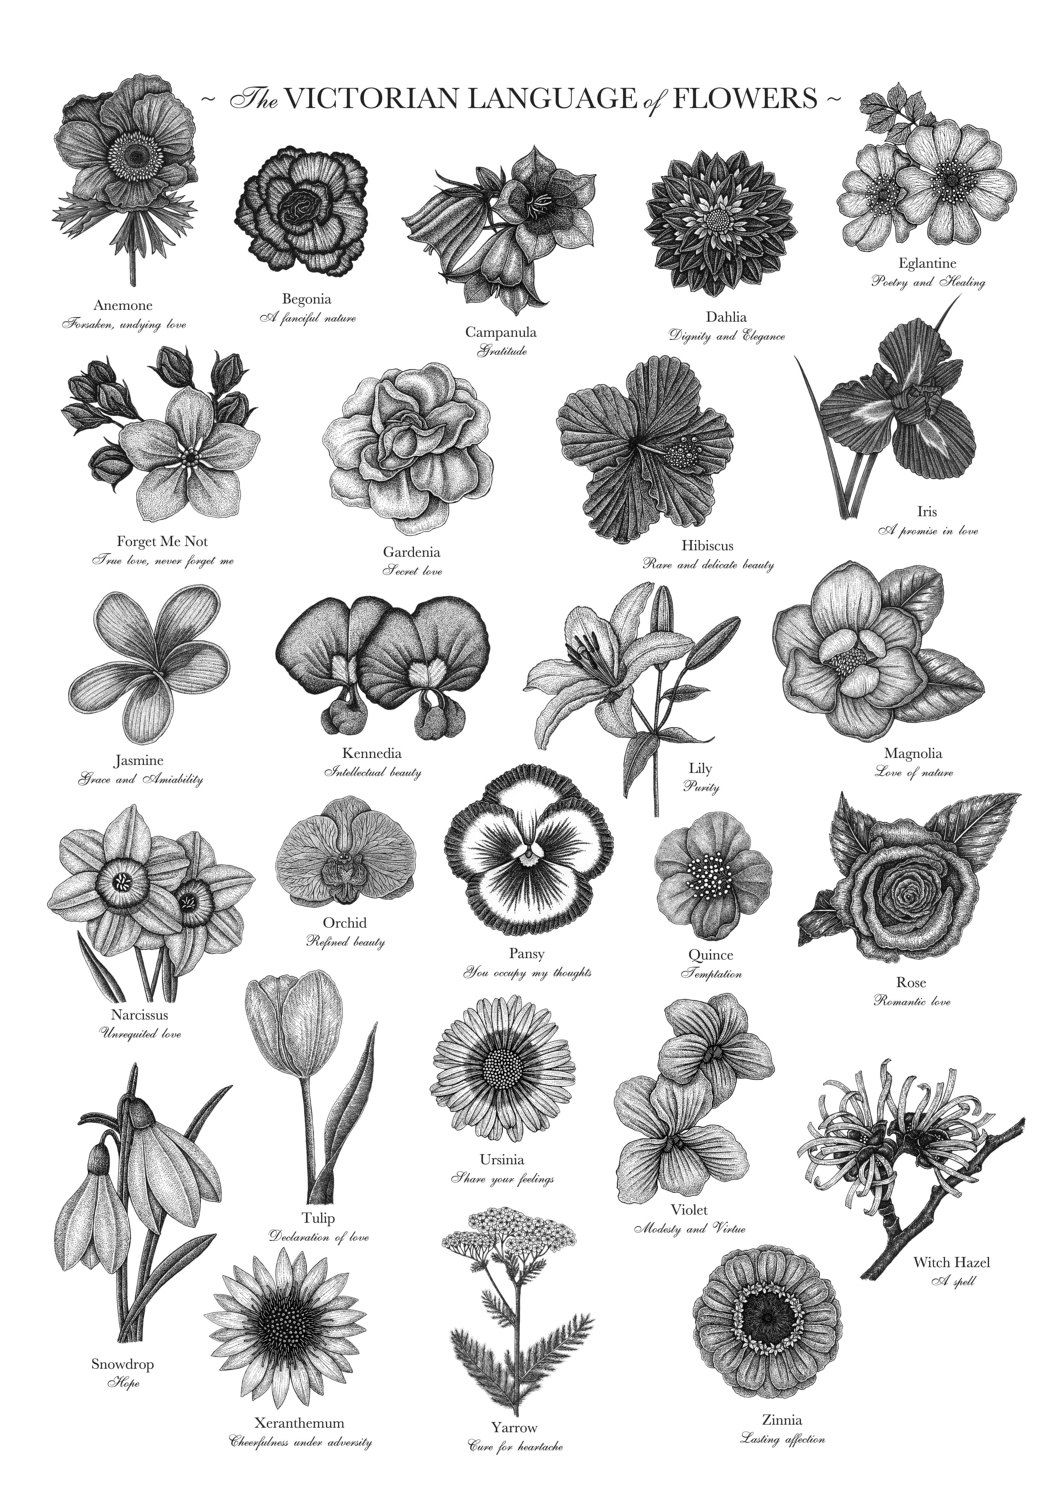 Victorian Language of Flowers Print A to Z of Flowers